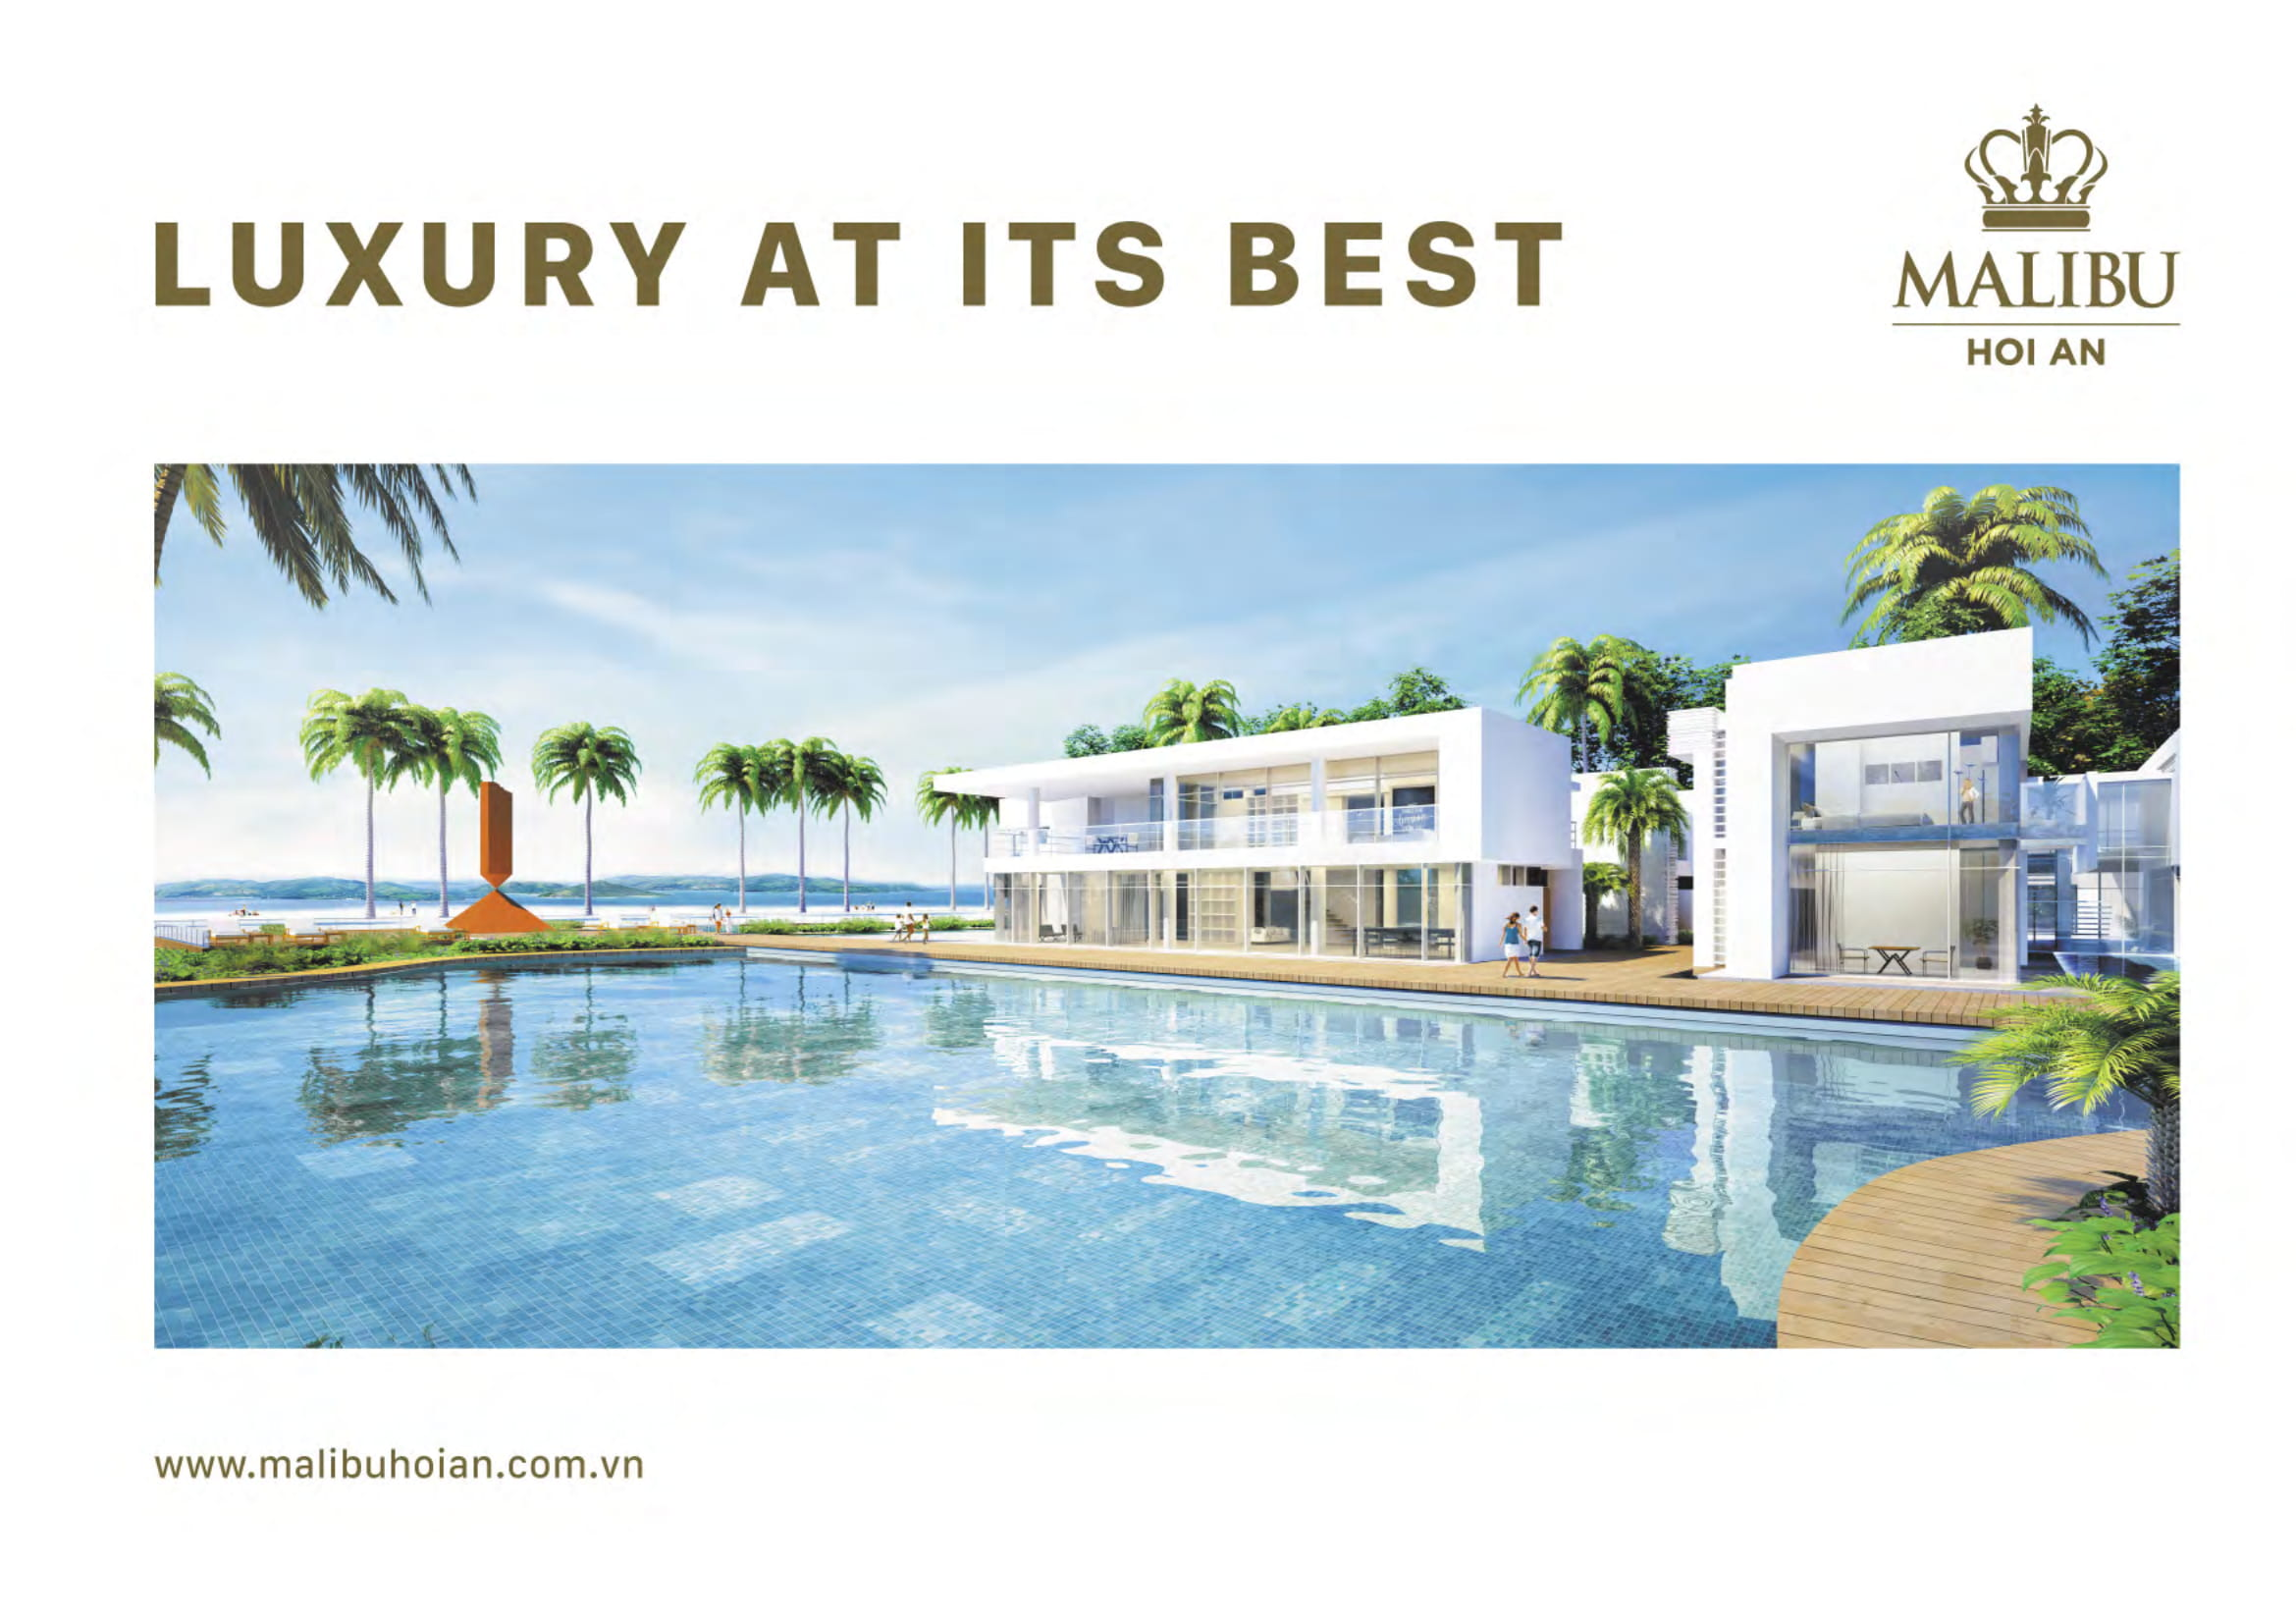 Malibu Hoi An - The Official Presentation Ceremony on December 9, 2018